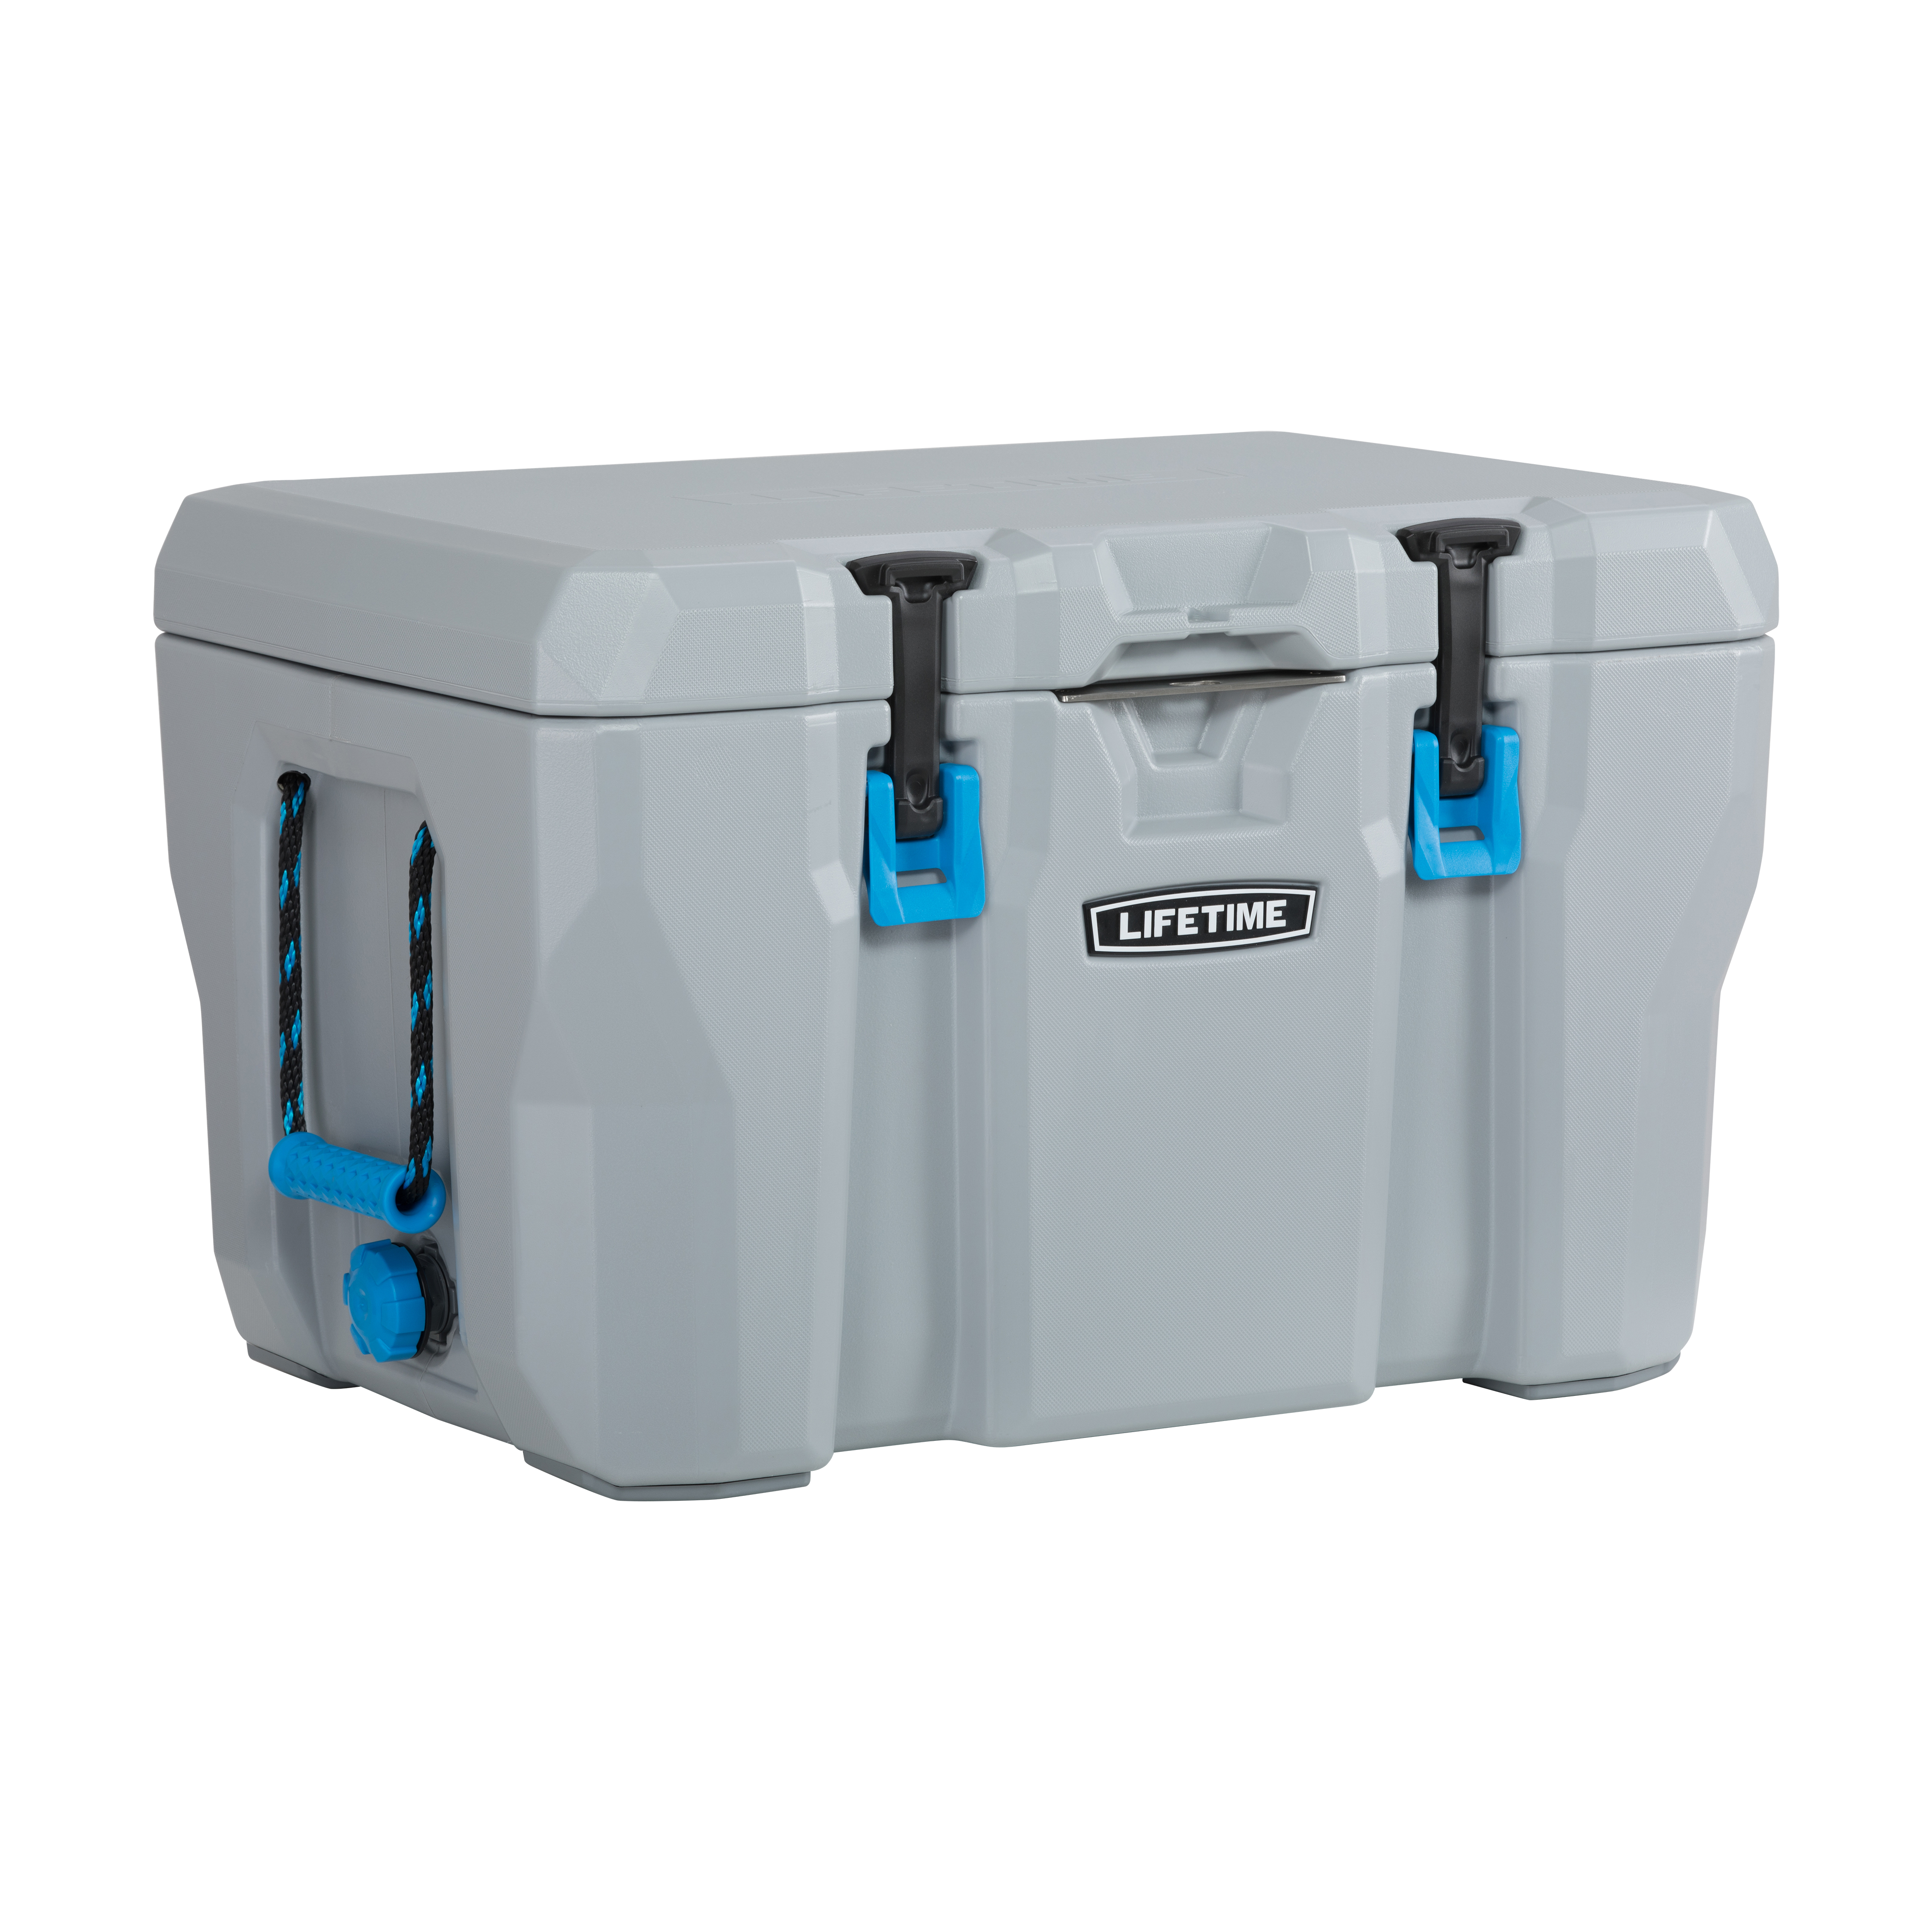 Lifetime 55 Quart High Performance Cooler, Grey, 90820 by Lifetime Products